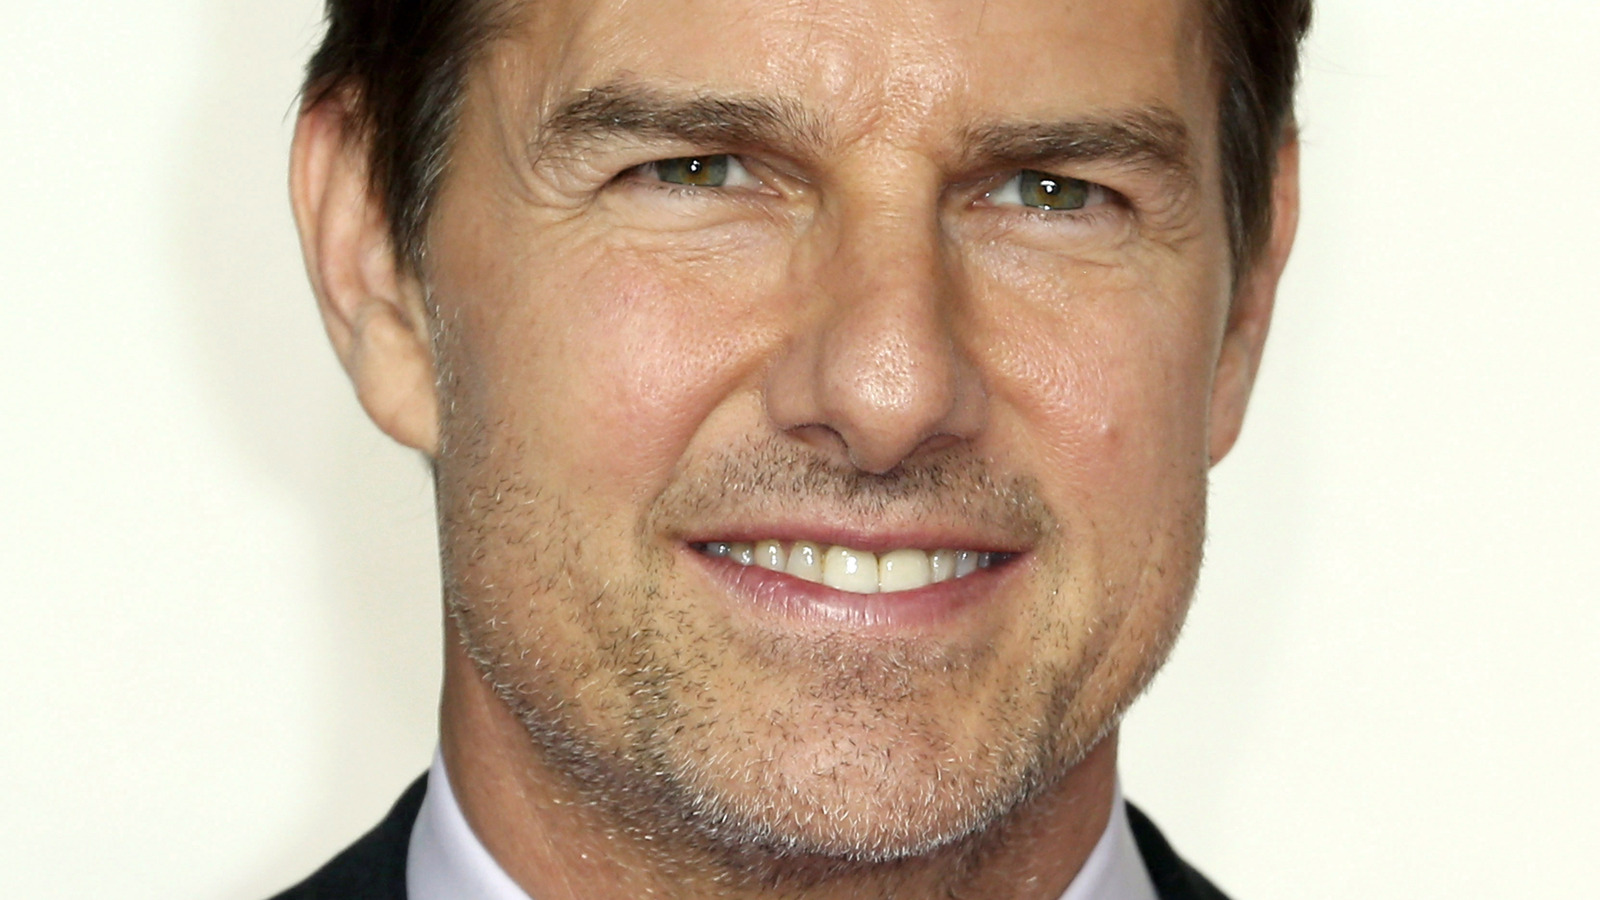 Where Does Tom Cruise Live And How Big Is His House?